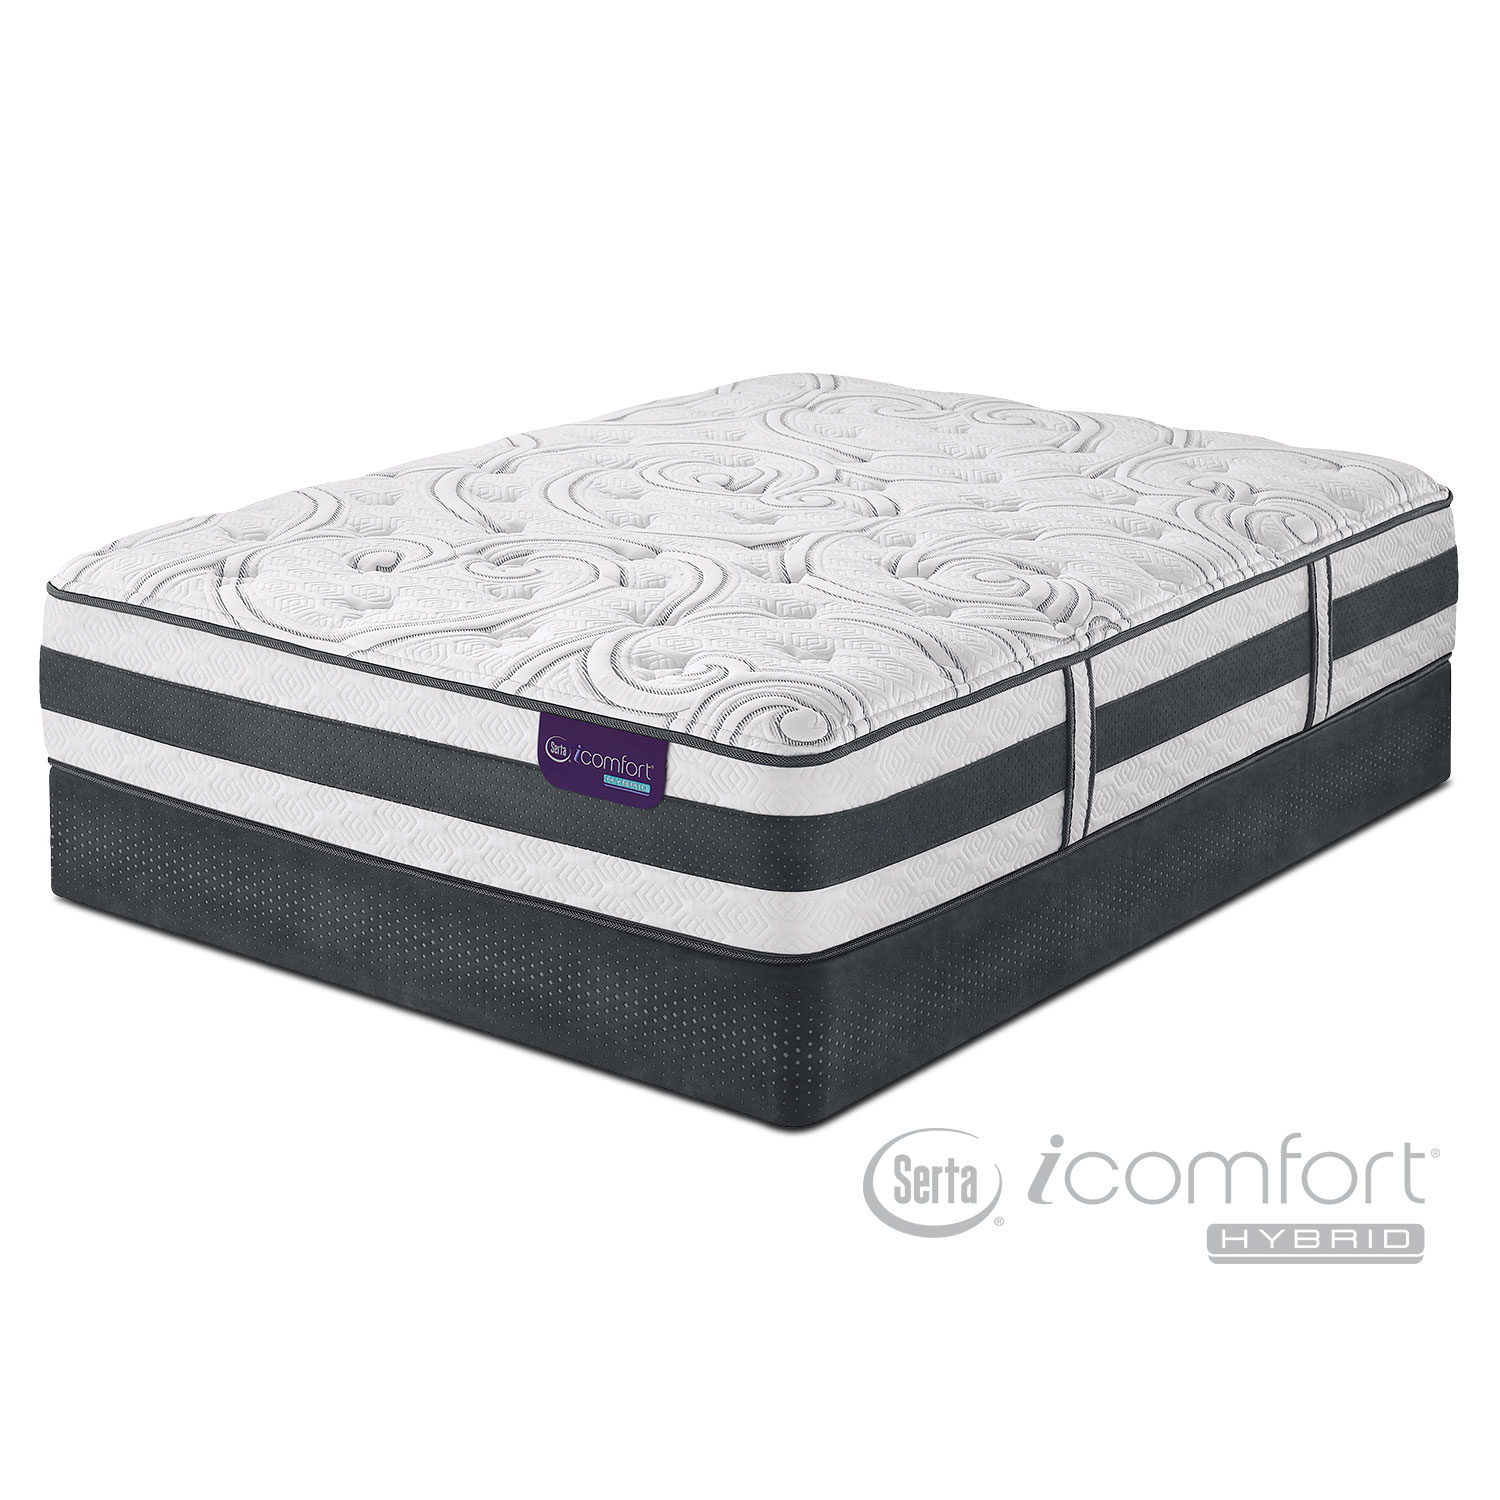 Mattresses and Bedding - Applause II Plush Twin Mattress/Foundation Set